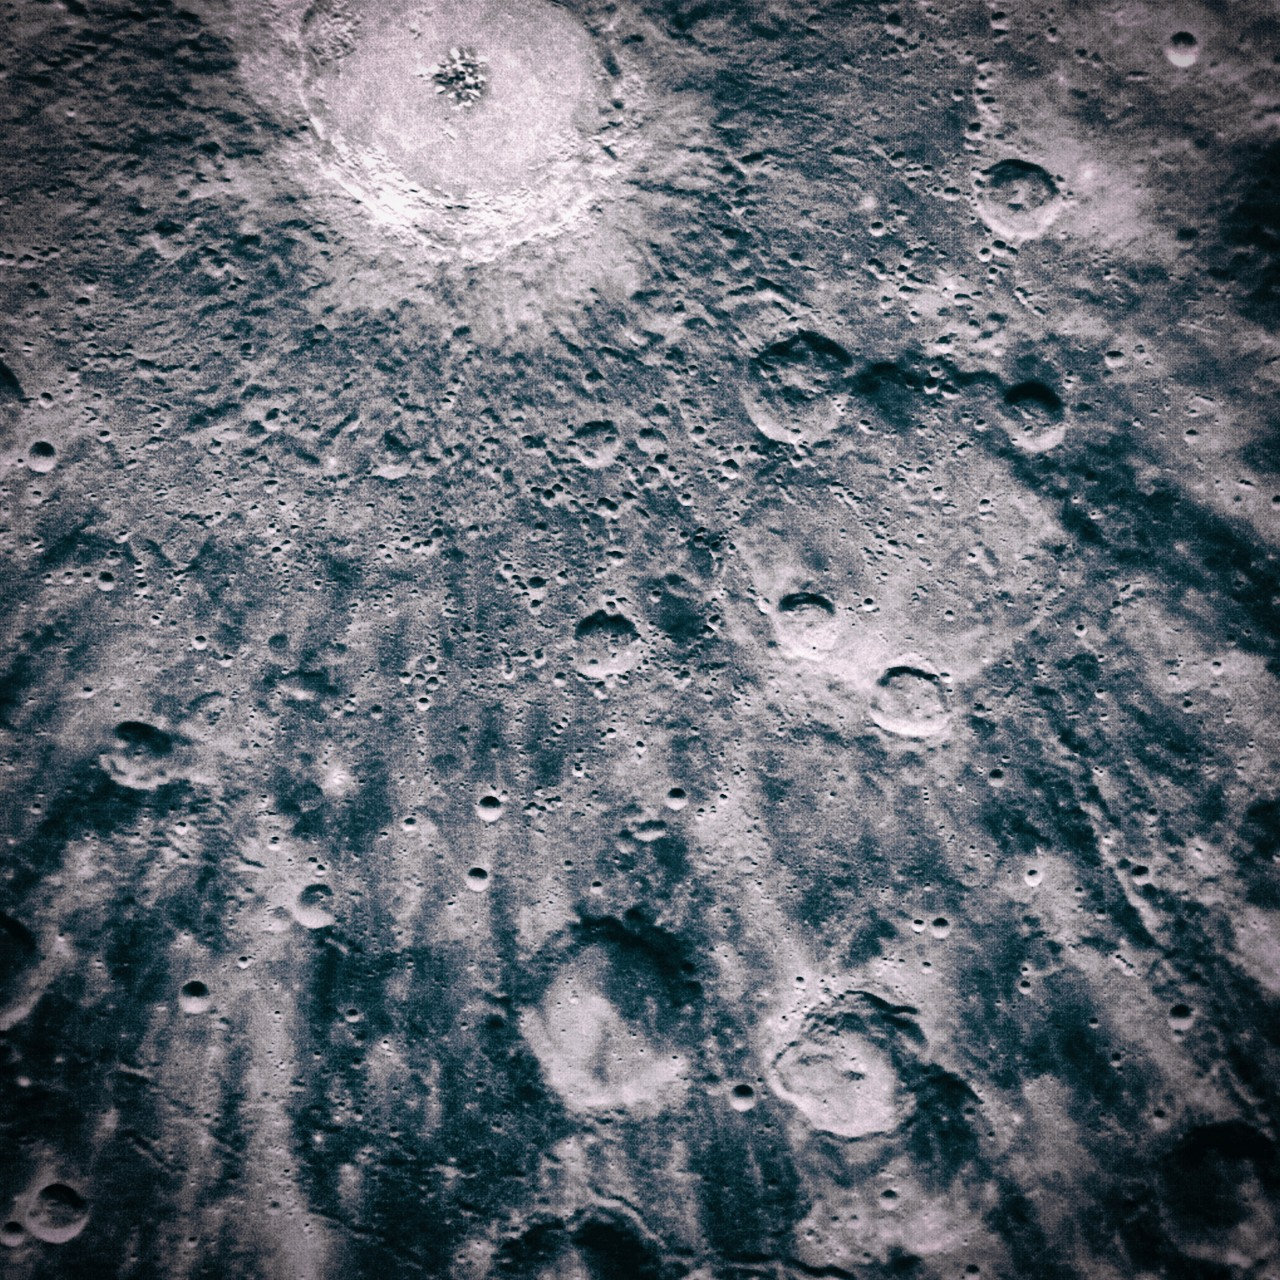 The Lunar surface in the vicinity of Copernicus crater.